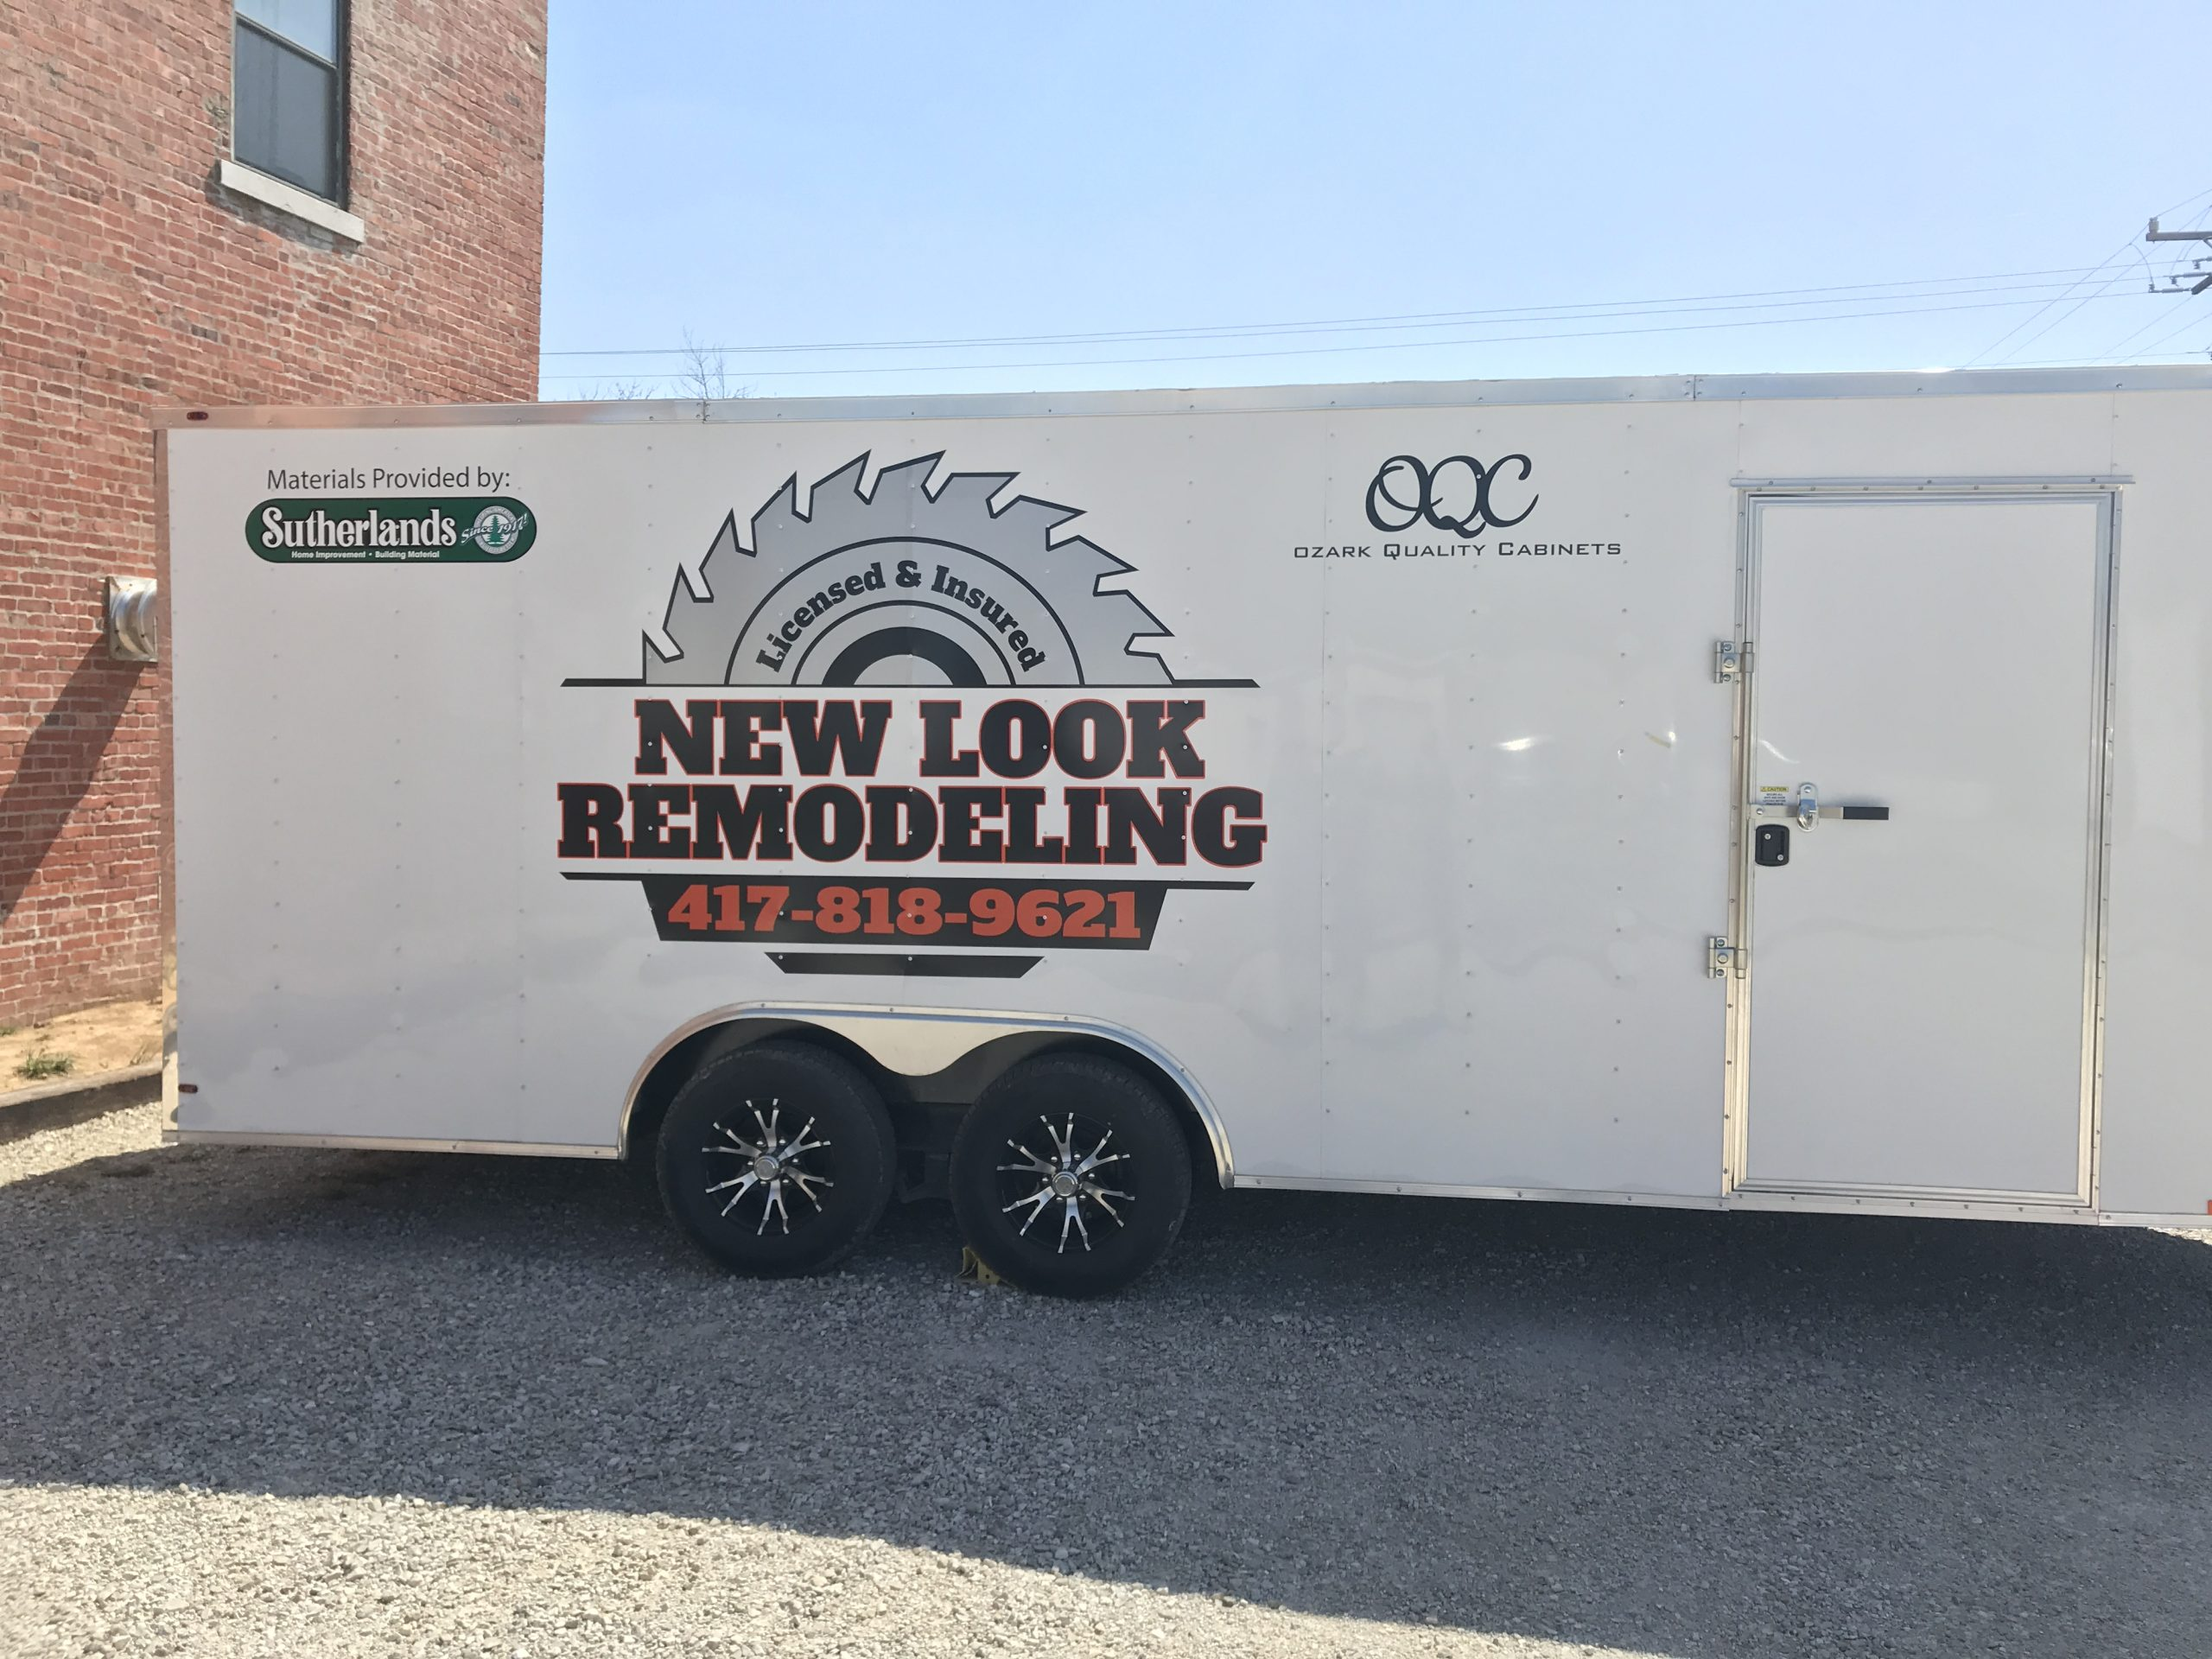 New Look Remodeling